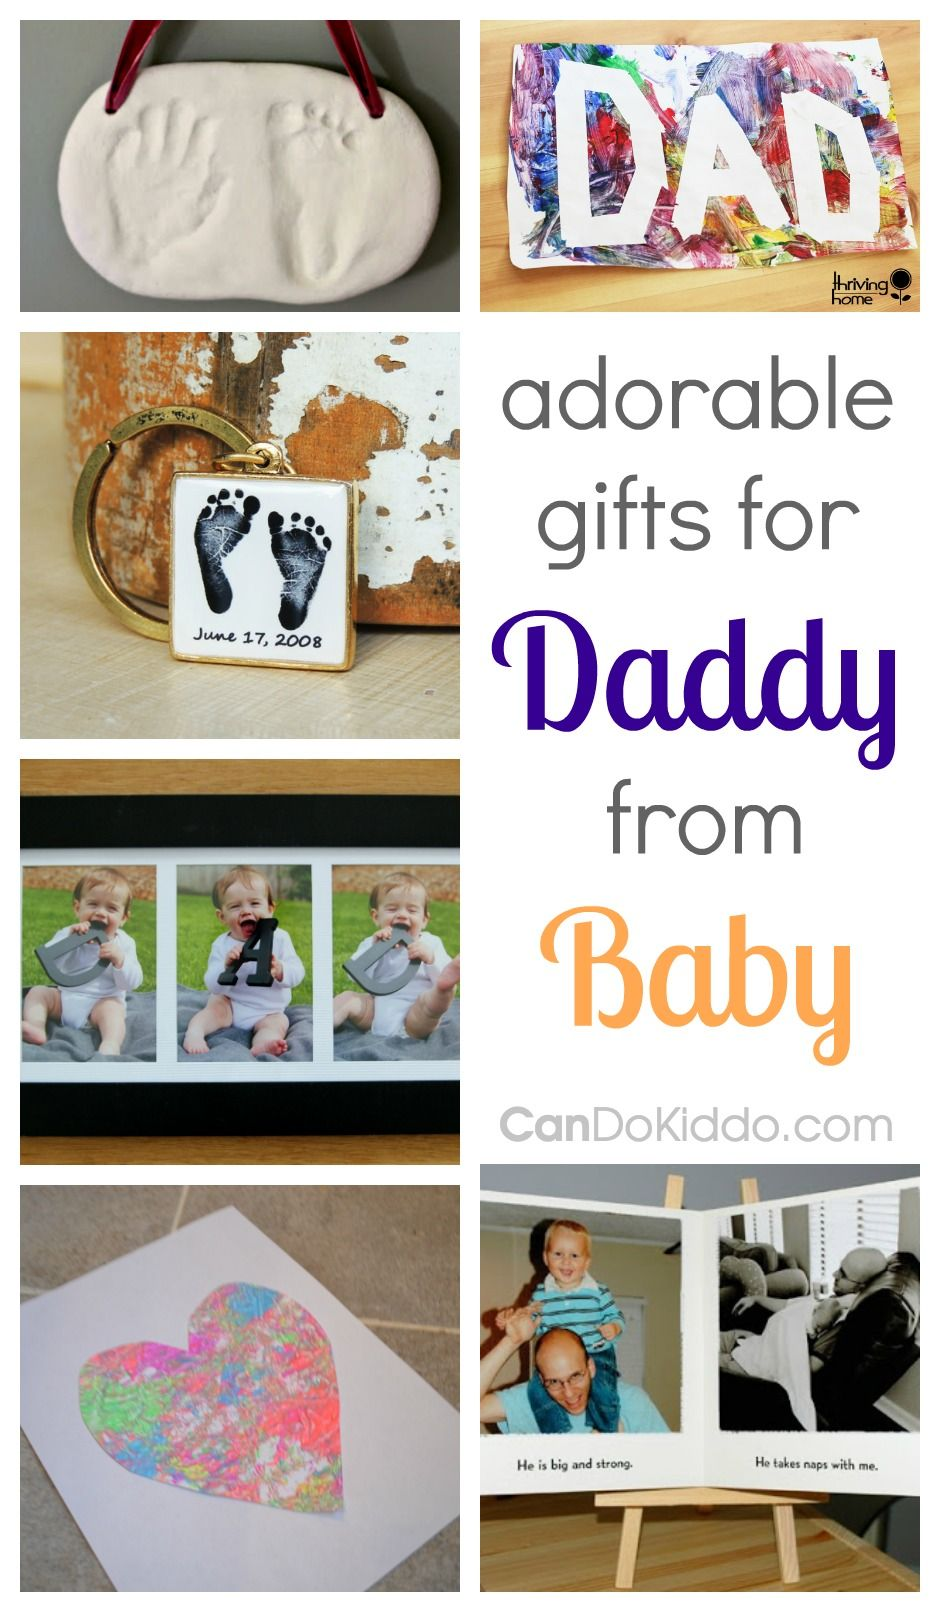 Adorable Fathers Day Gifts For Dad DIY And Personal Presents Daddy From Baby CanDo Kiddo